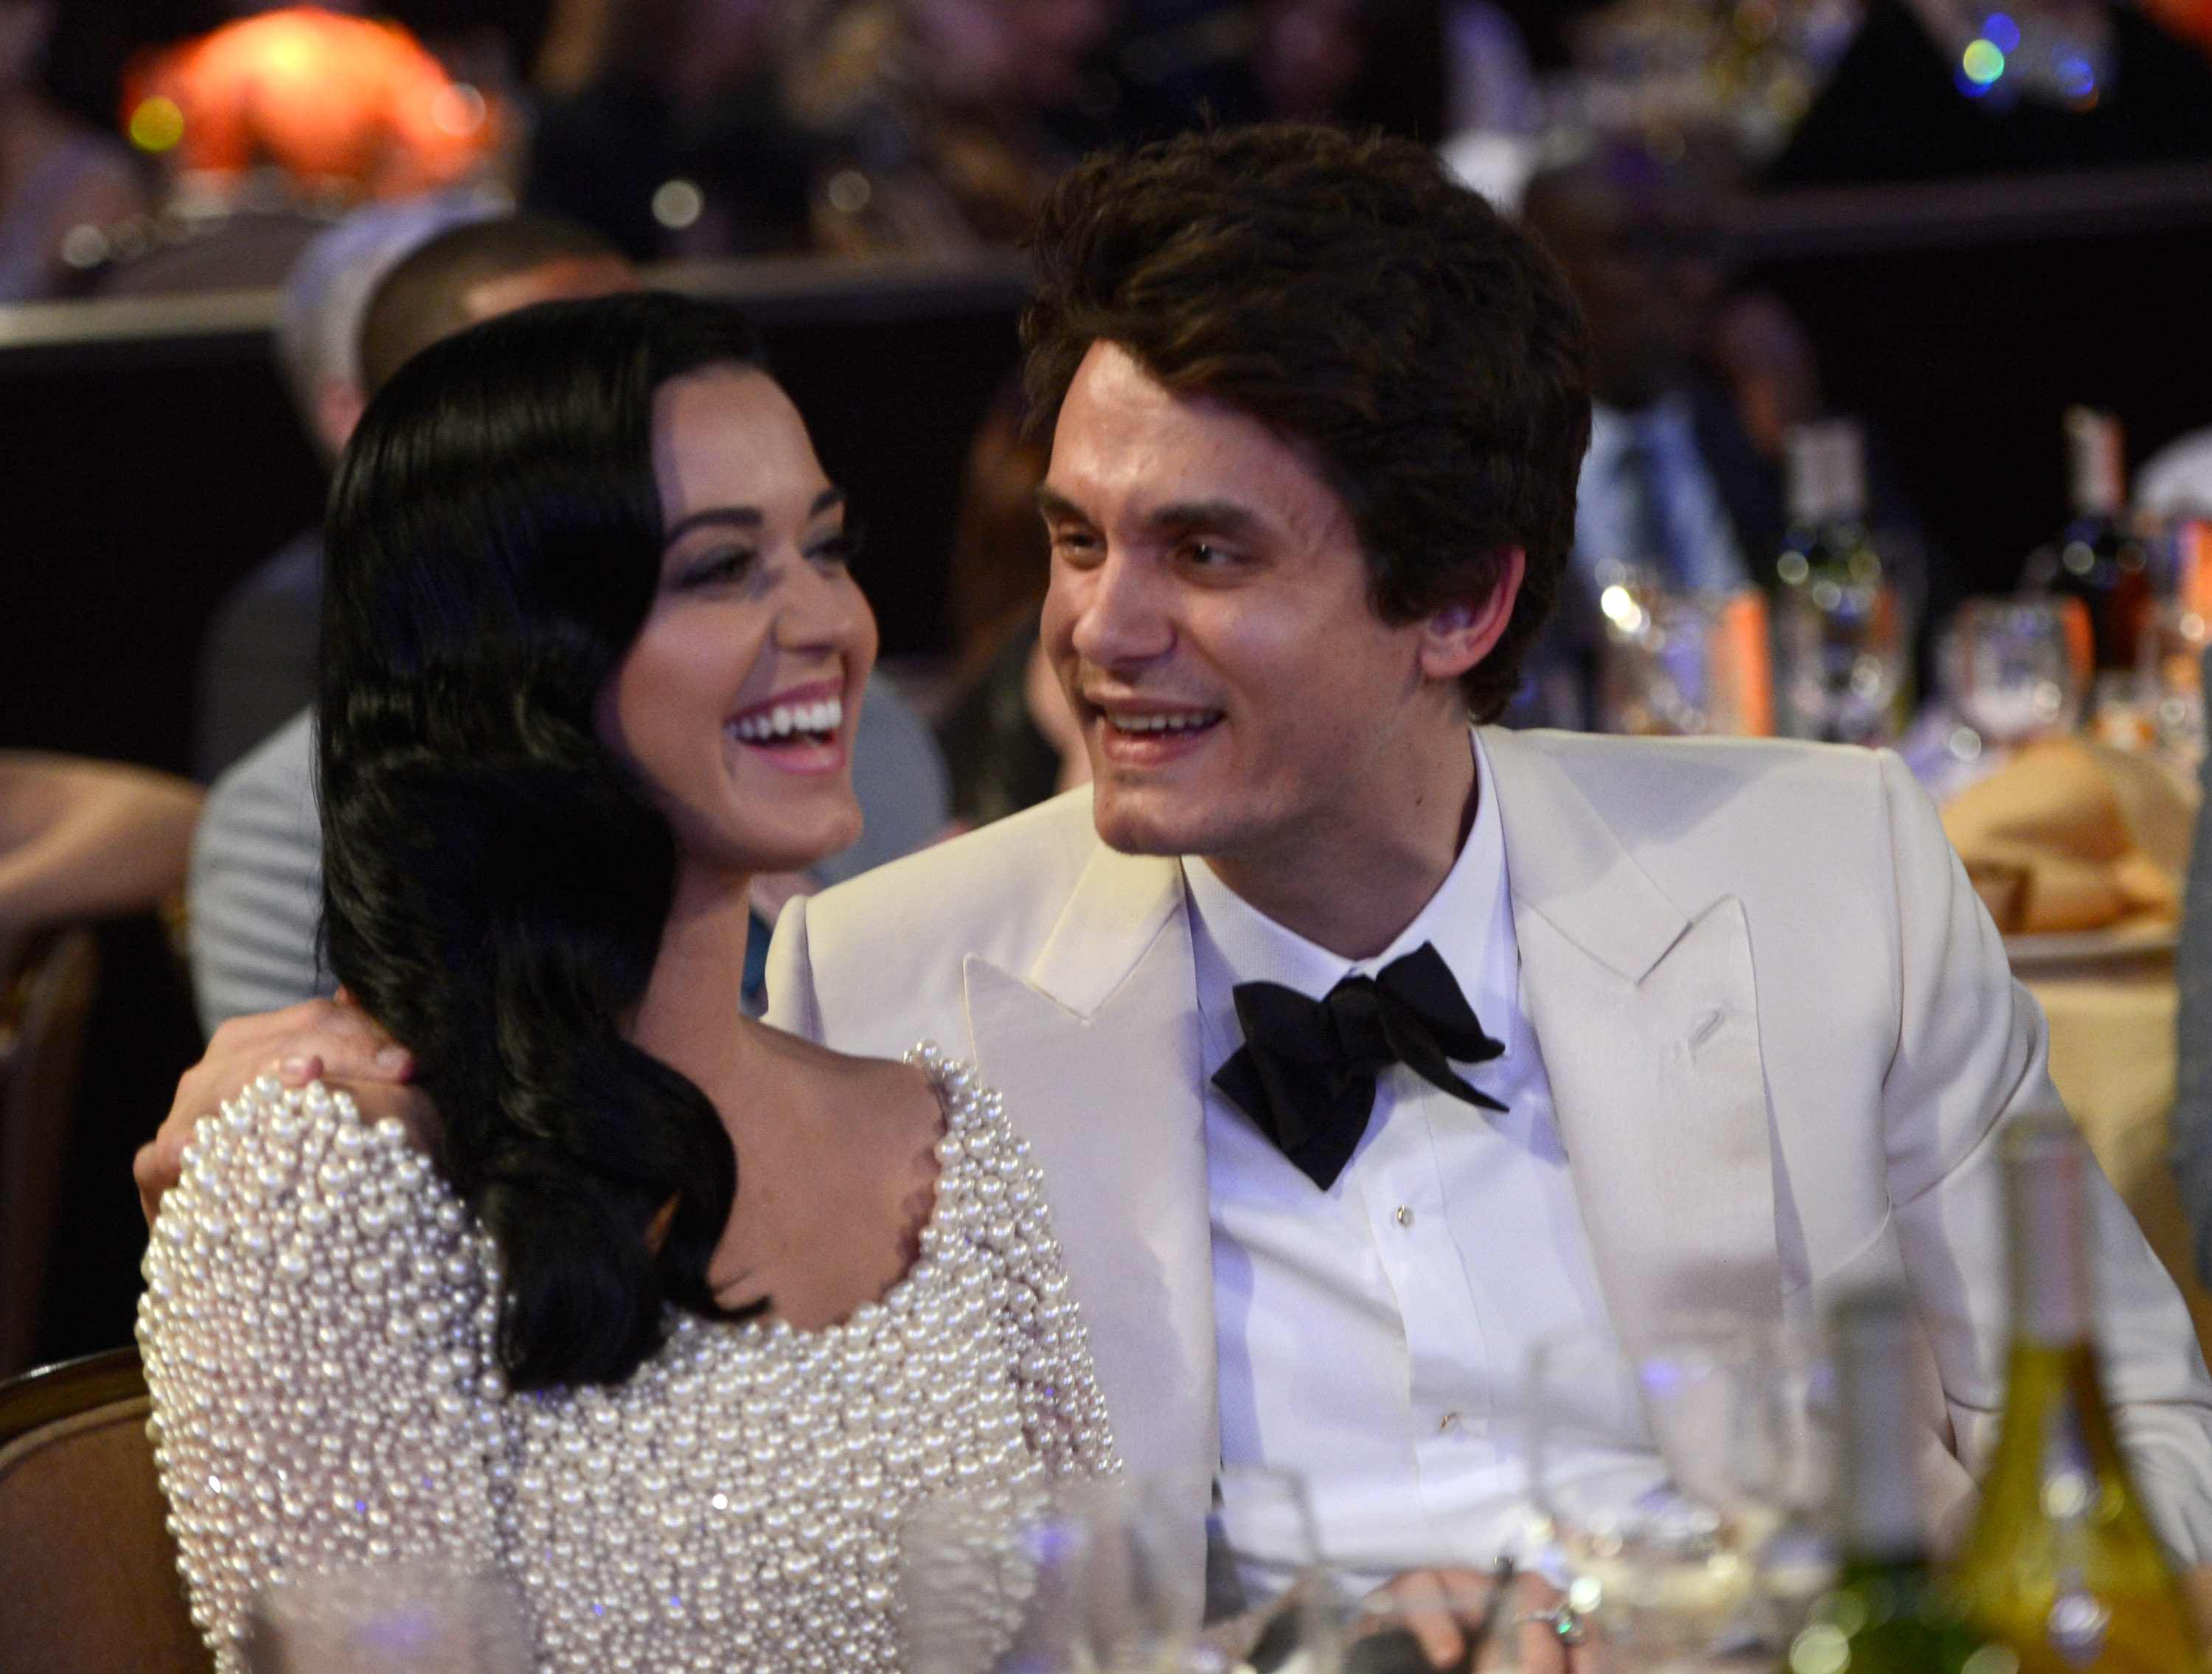 LOS ANGELES, CA - FEBRUARY 09:  Katy Perry and John Mayer attend the 55th Annual GRAMMY Awards Pre-GRAMMY Gala and Salute to